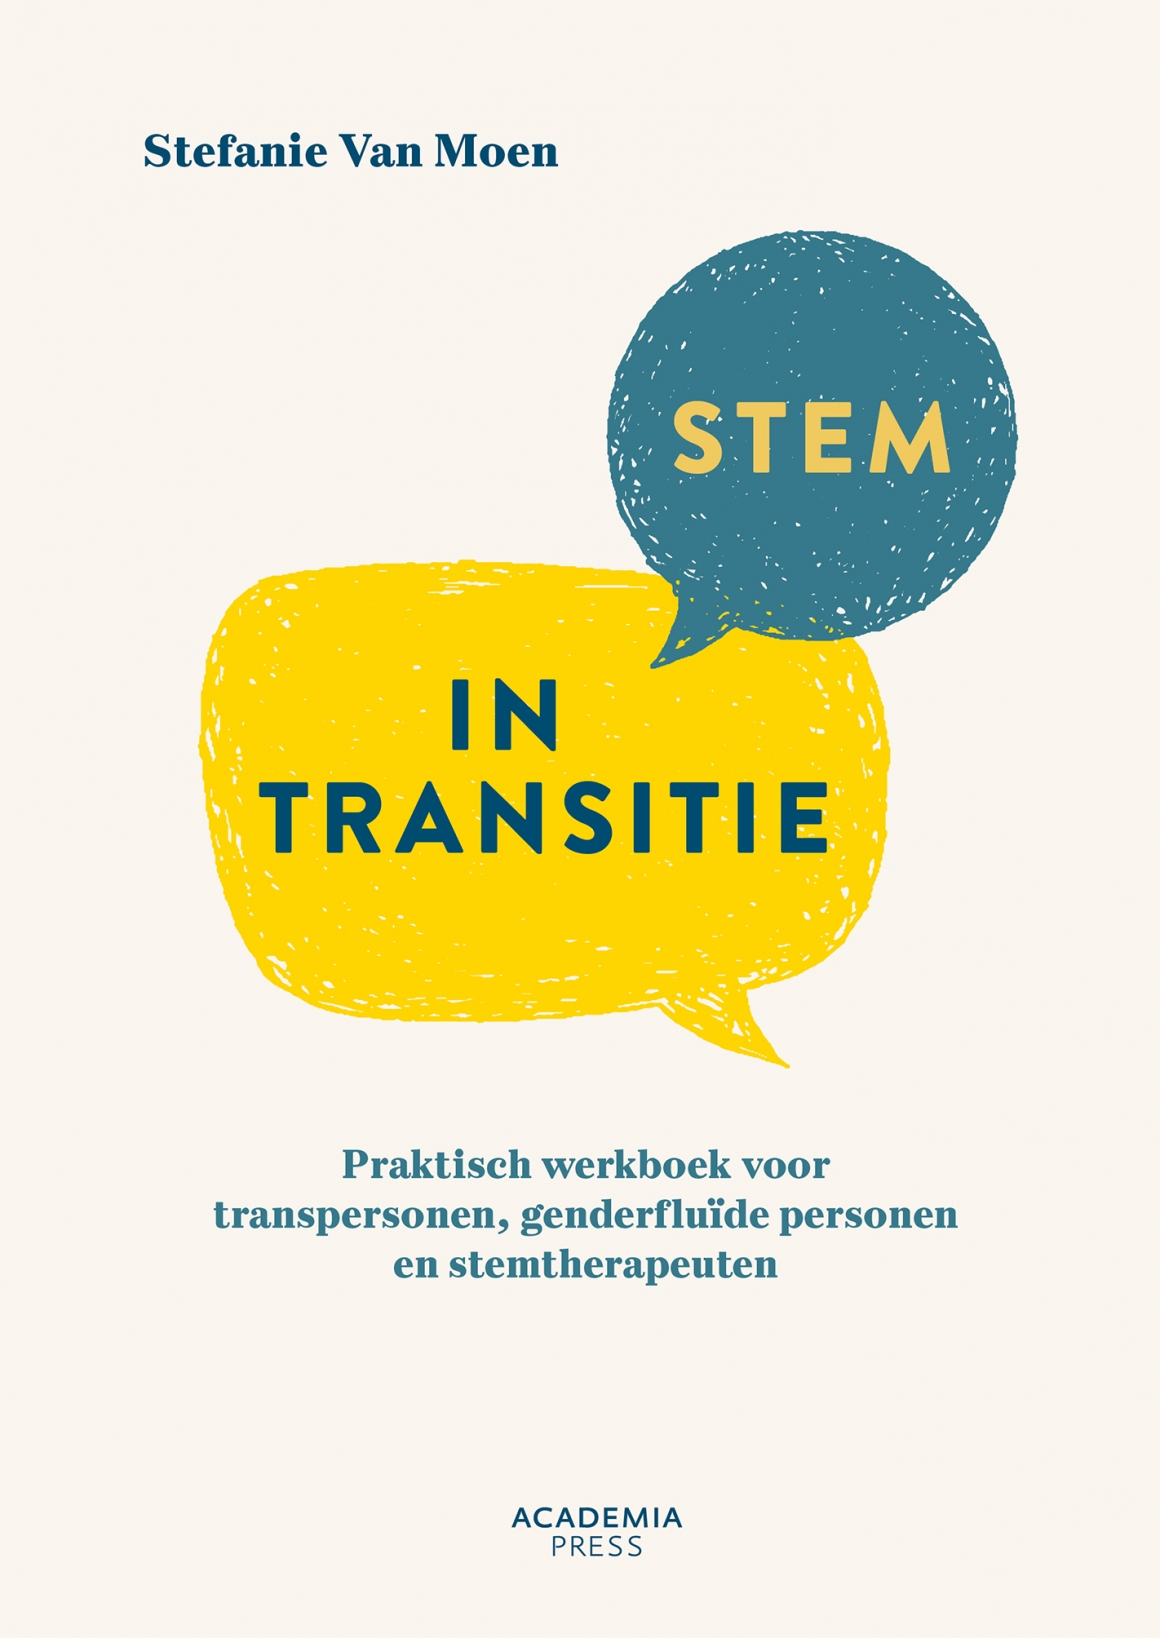 Boekcover 'Stem in transitie'